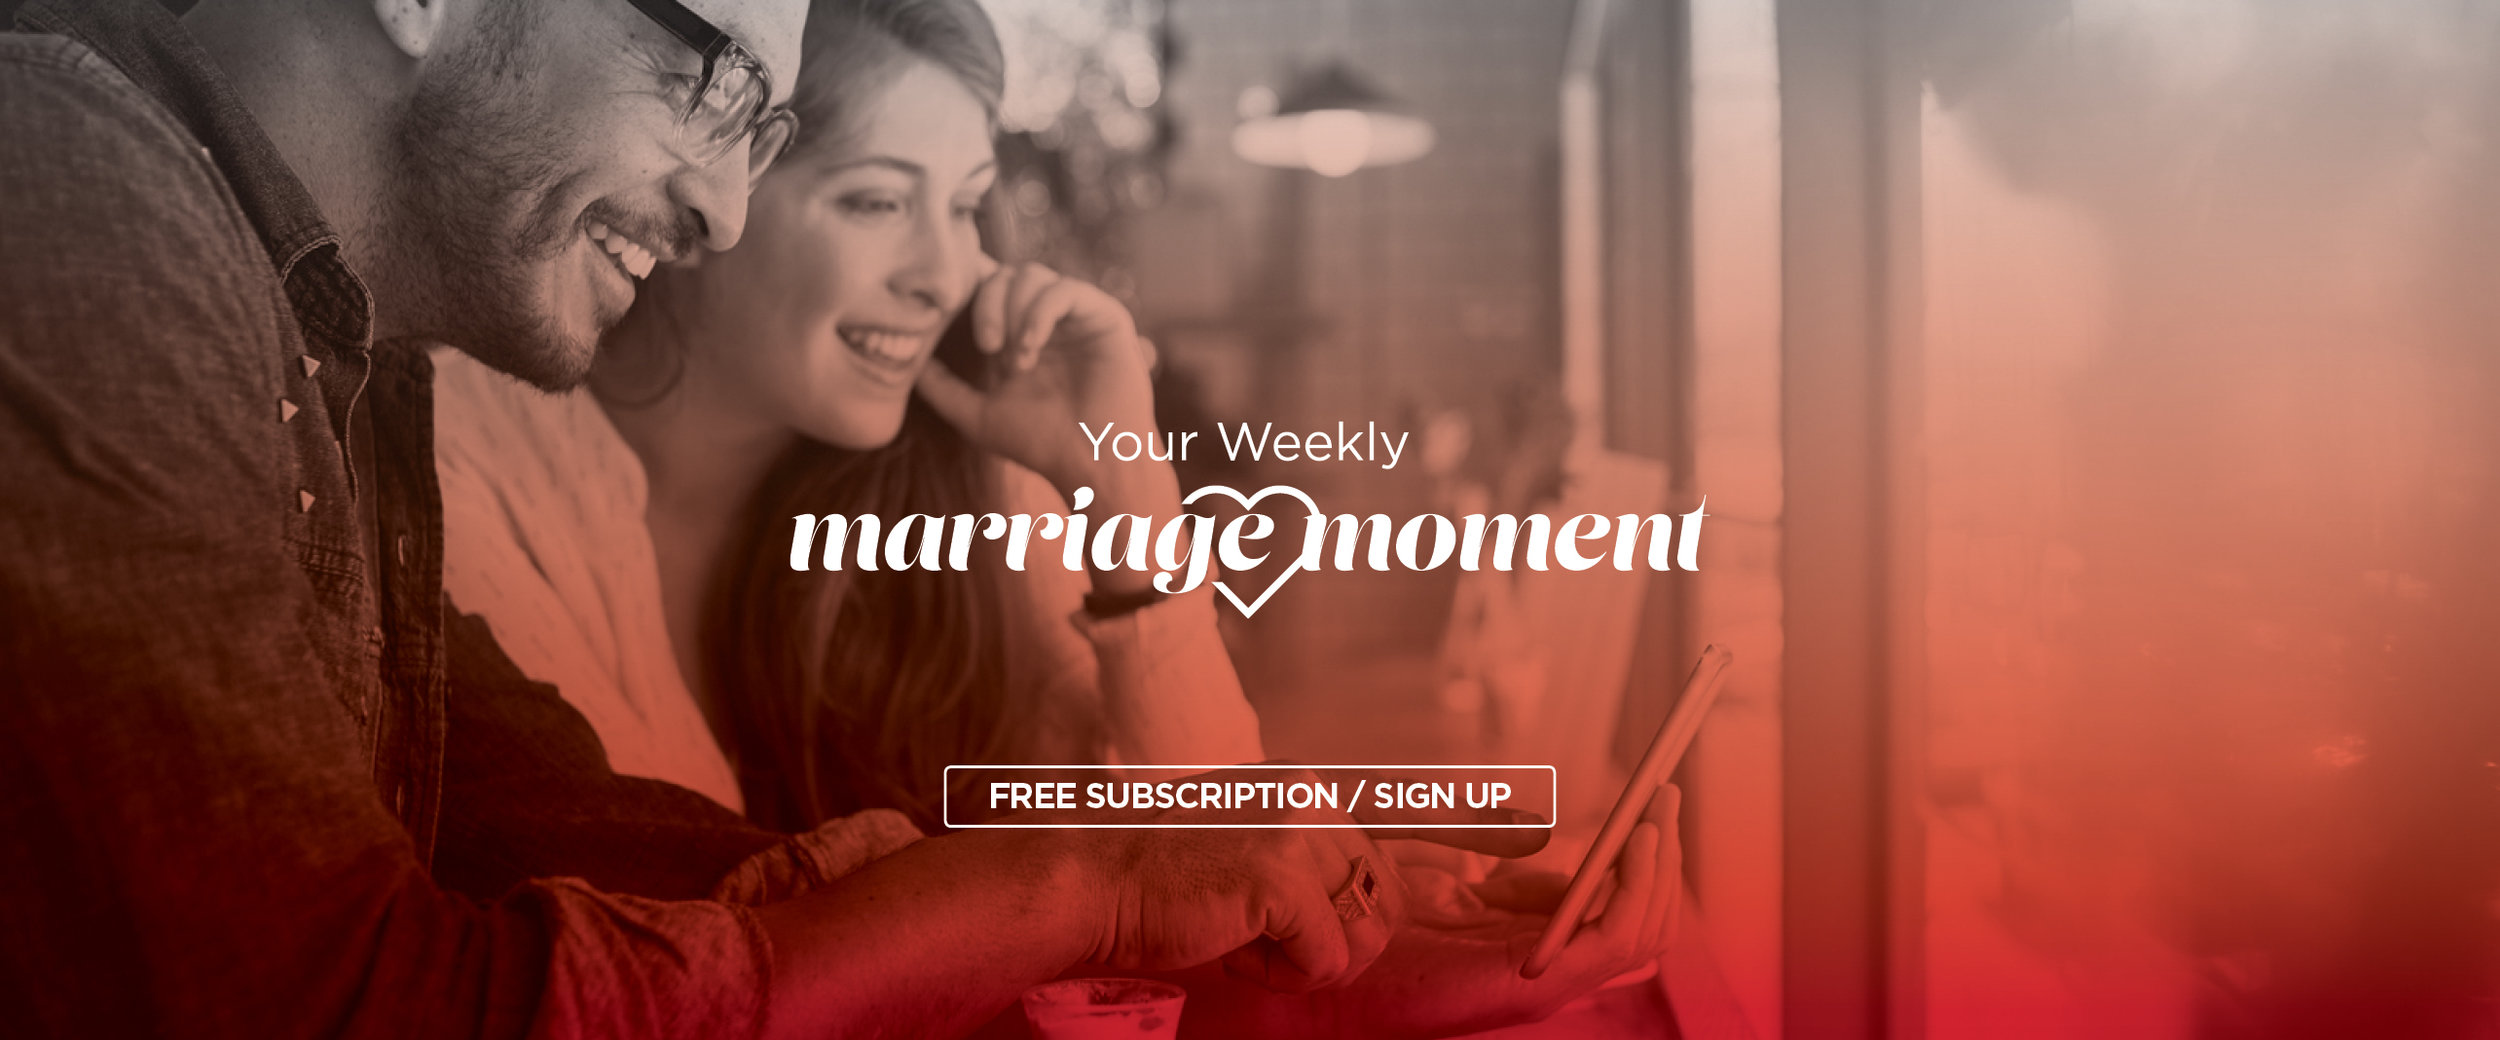 ABU-Website-Banners-MarriageMoments.jpg